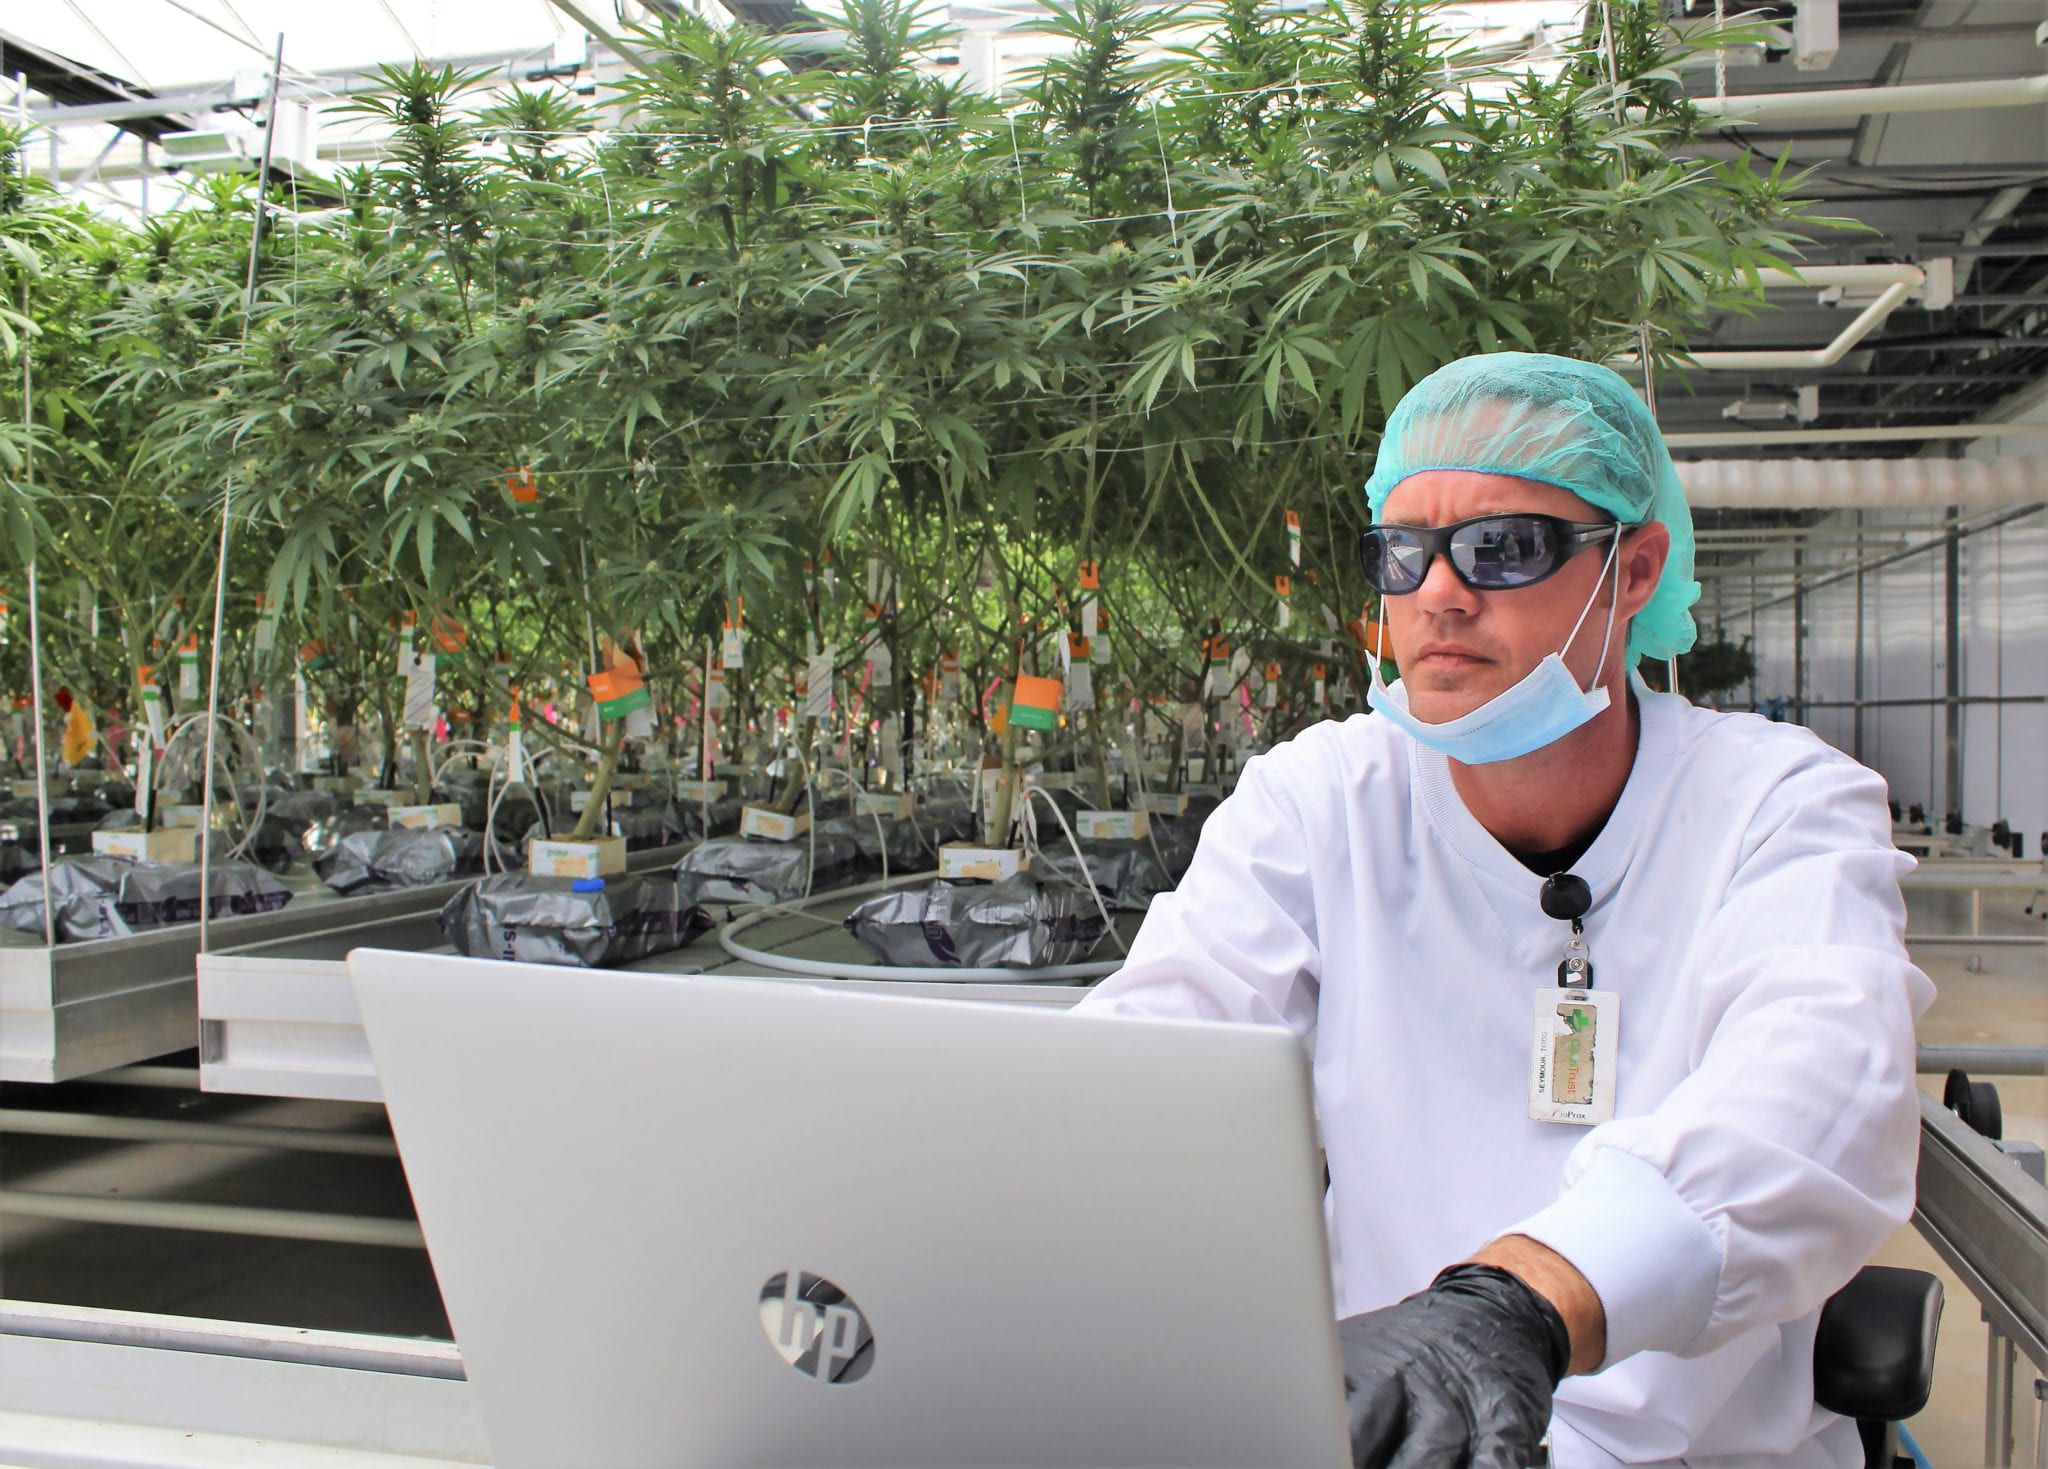 CannTrust to Destroy $77 Million Worth of Cannabis to Regain Compliance